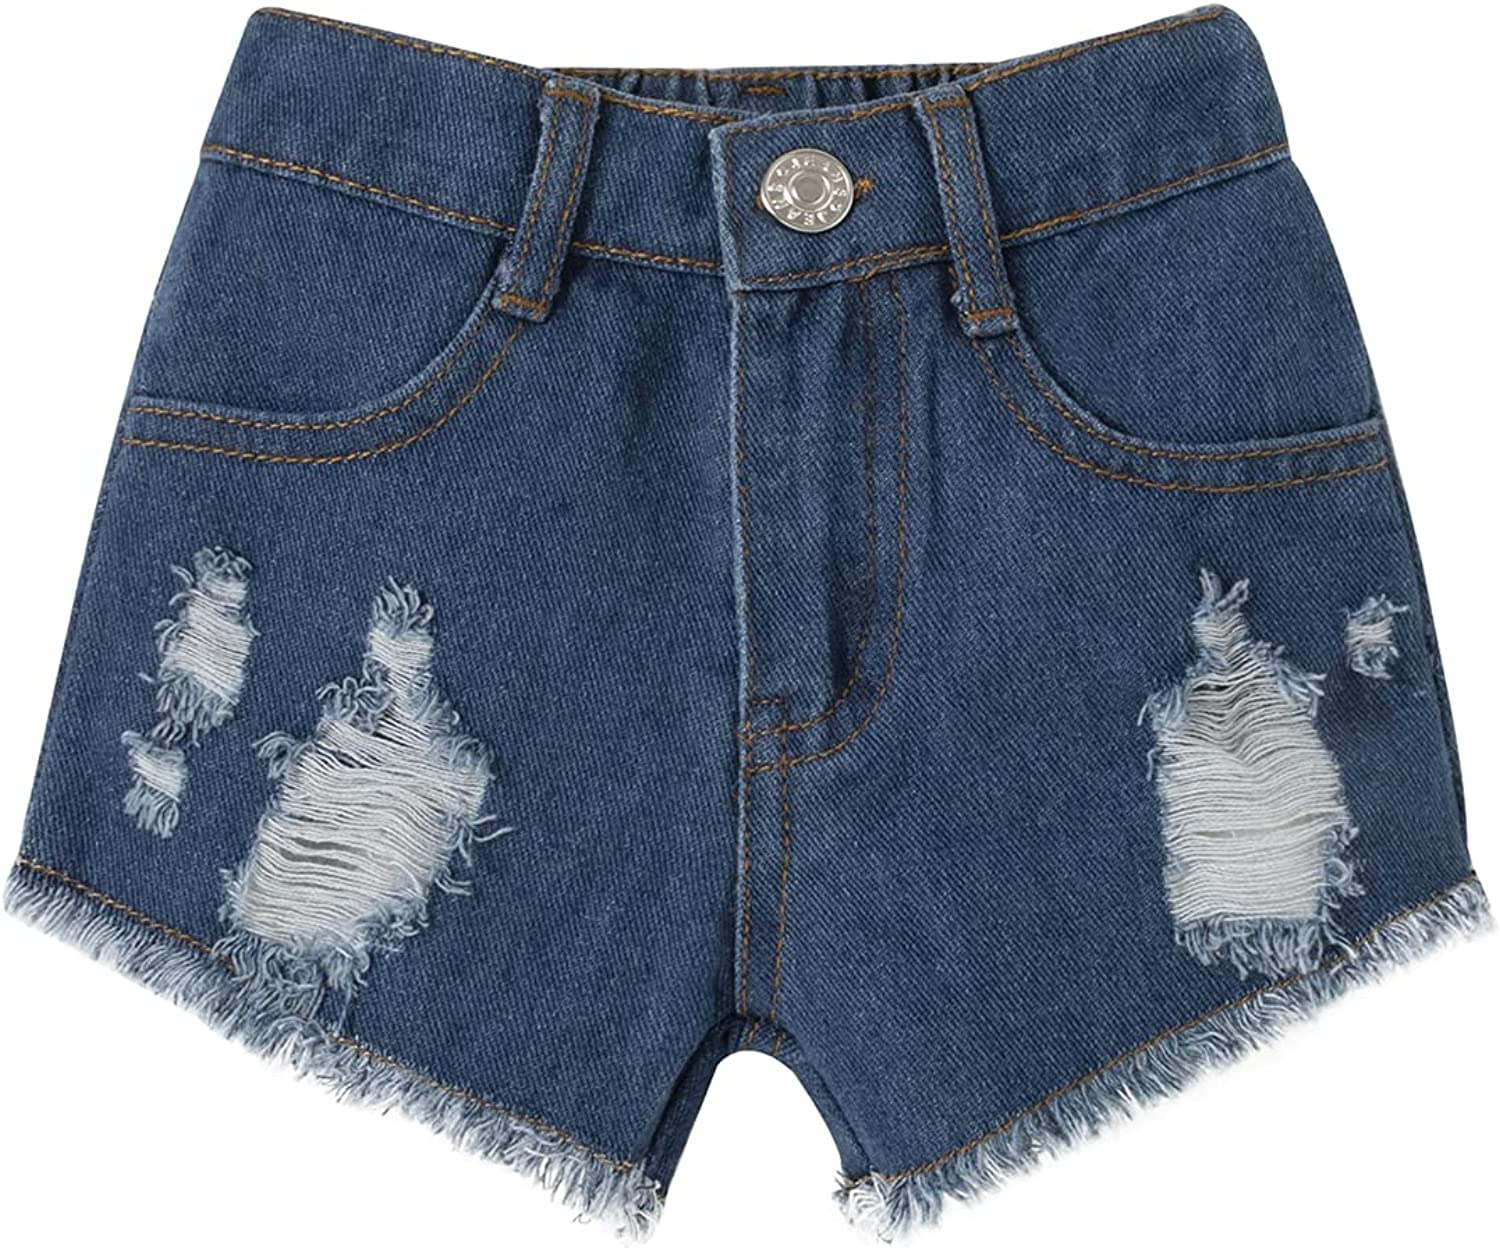 U·nikaka Baby Clothes Infant Toddler Boy Girl Outfit Summer Casual Ripped Jeans Denim Shorts with Pockets 1PC Blue